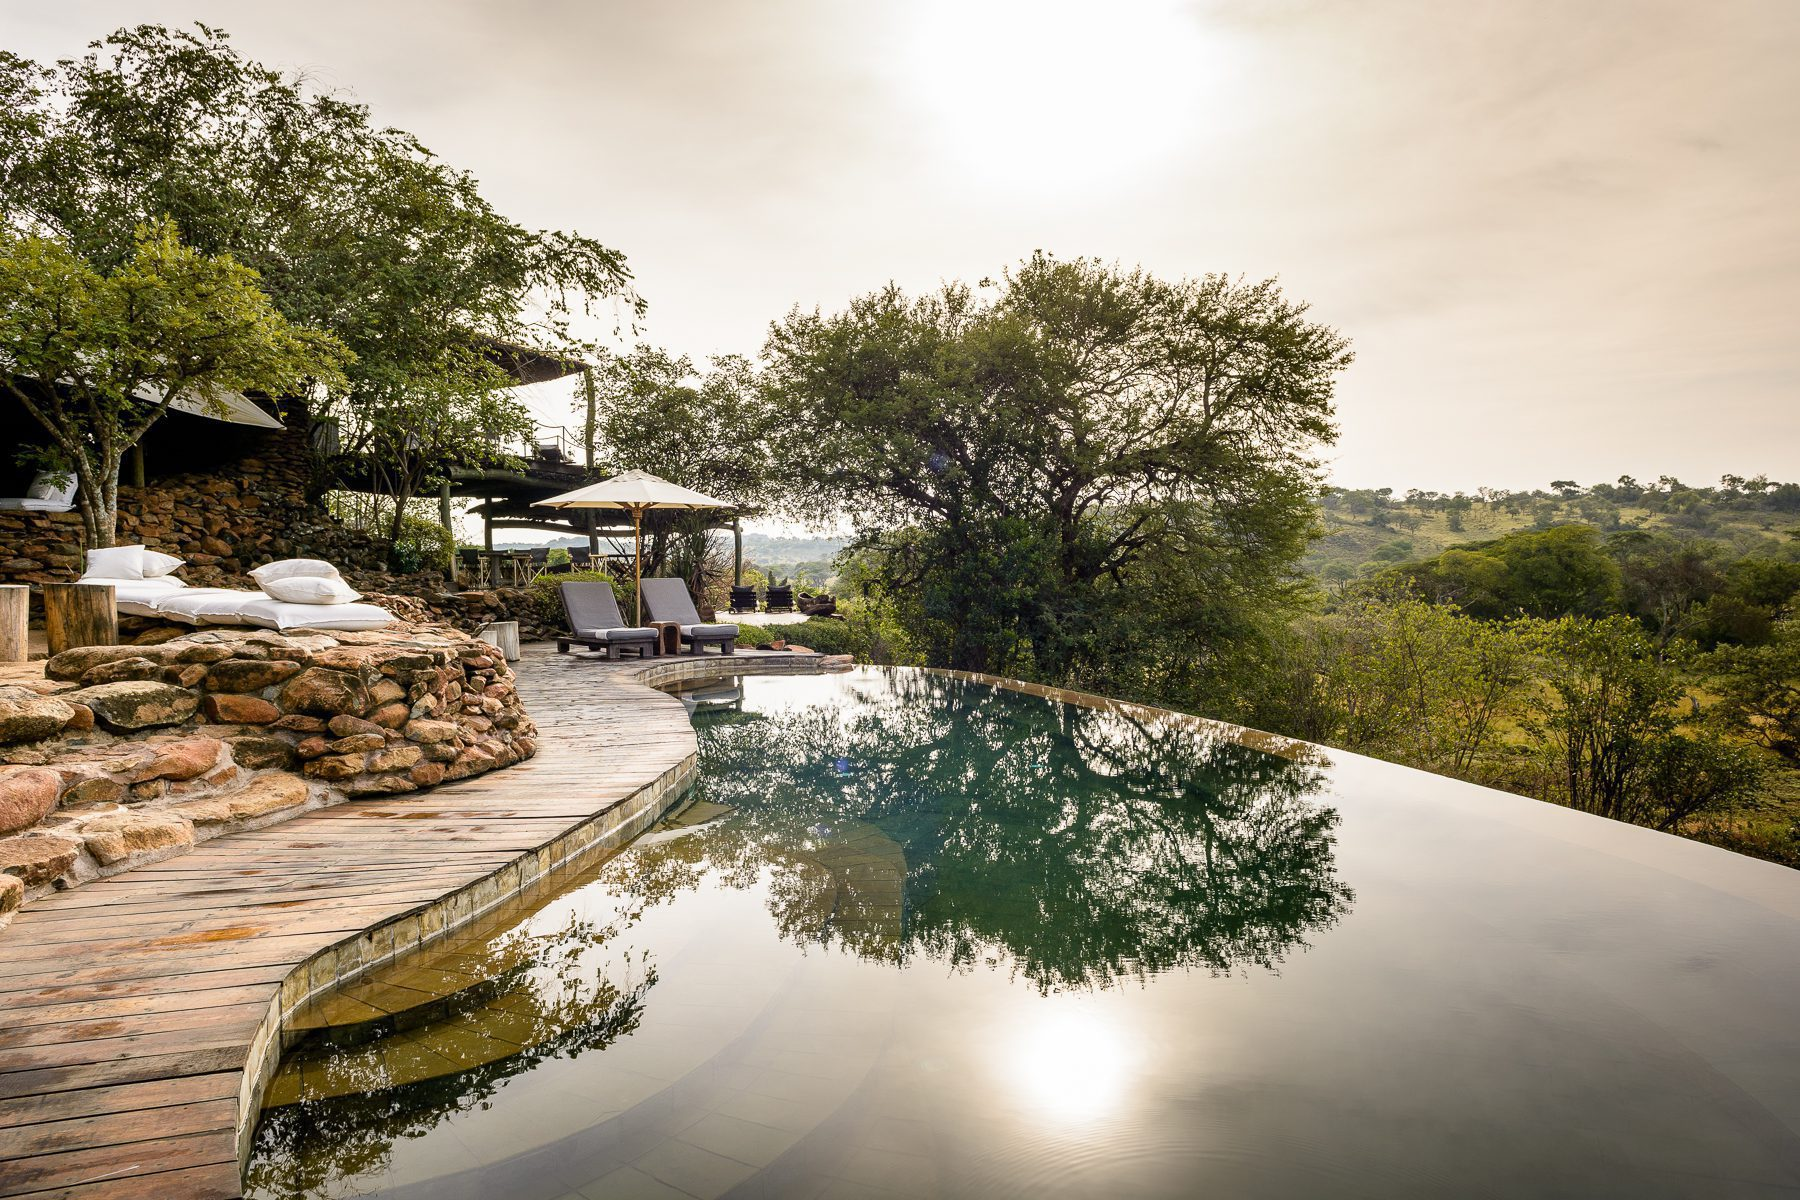 infinity pool and deck at Faru Faru Lodge on this Africa migration luxury safari